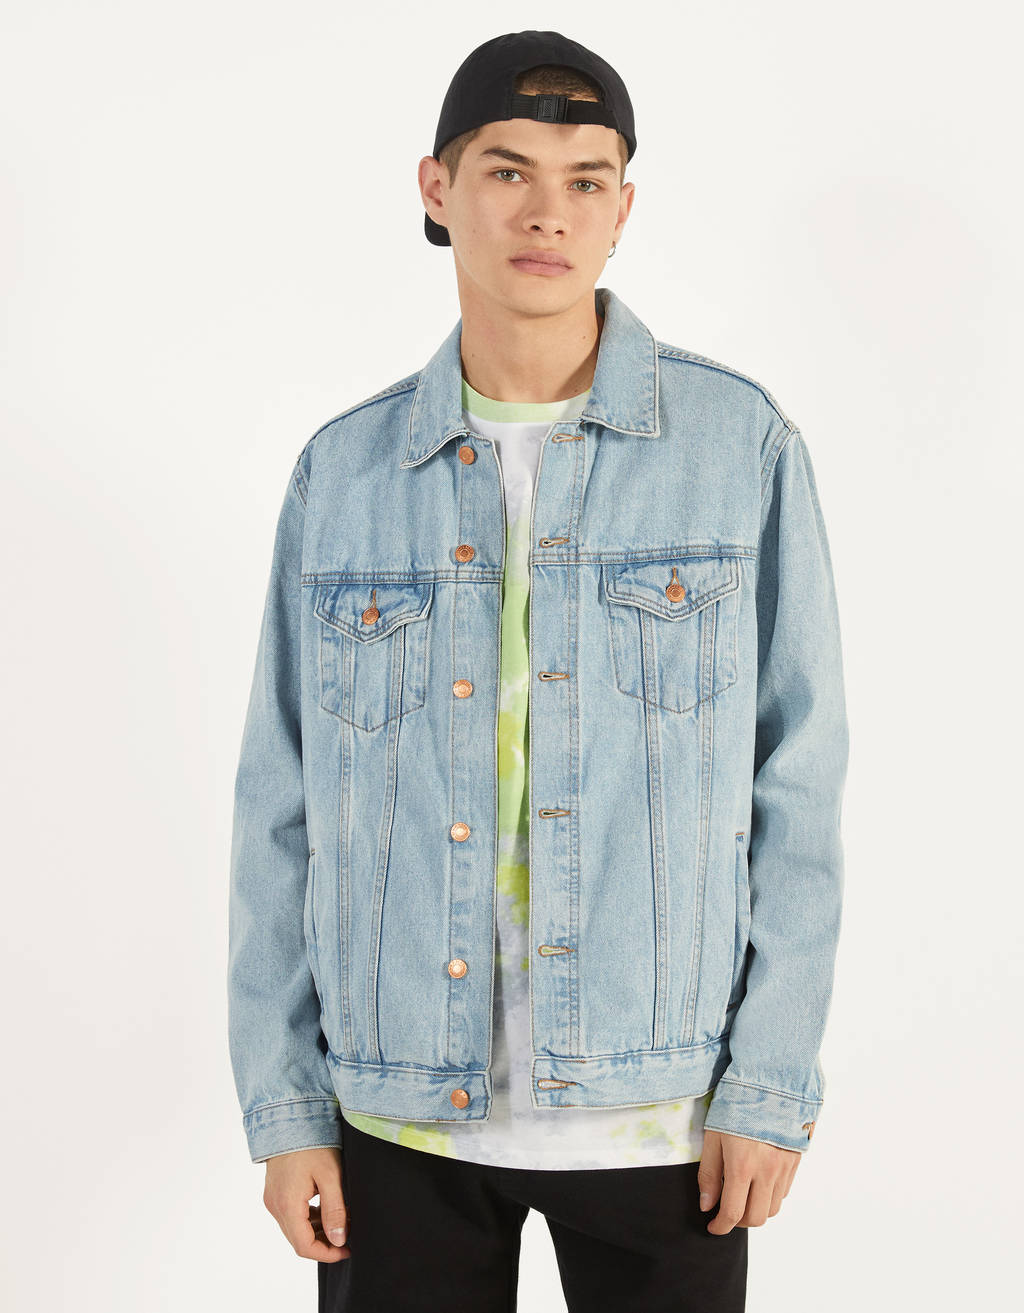 Regular Fit denim jacket